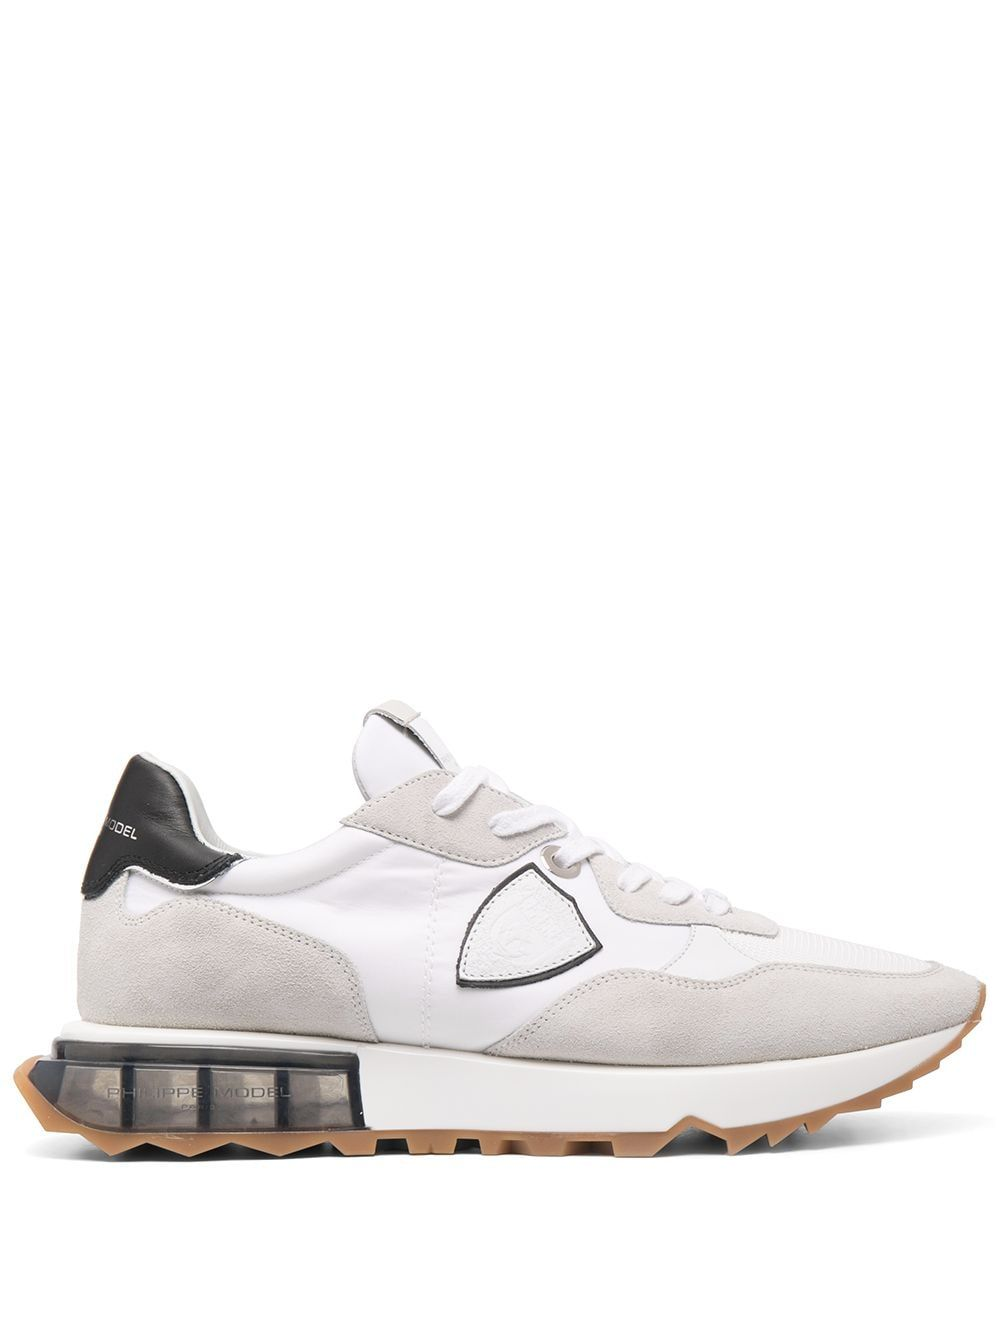 Philippe Model Sneakers PHILIPPE MODEL MEN'S LRLUW001 WHITE LEATHER SNEAKERS